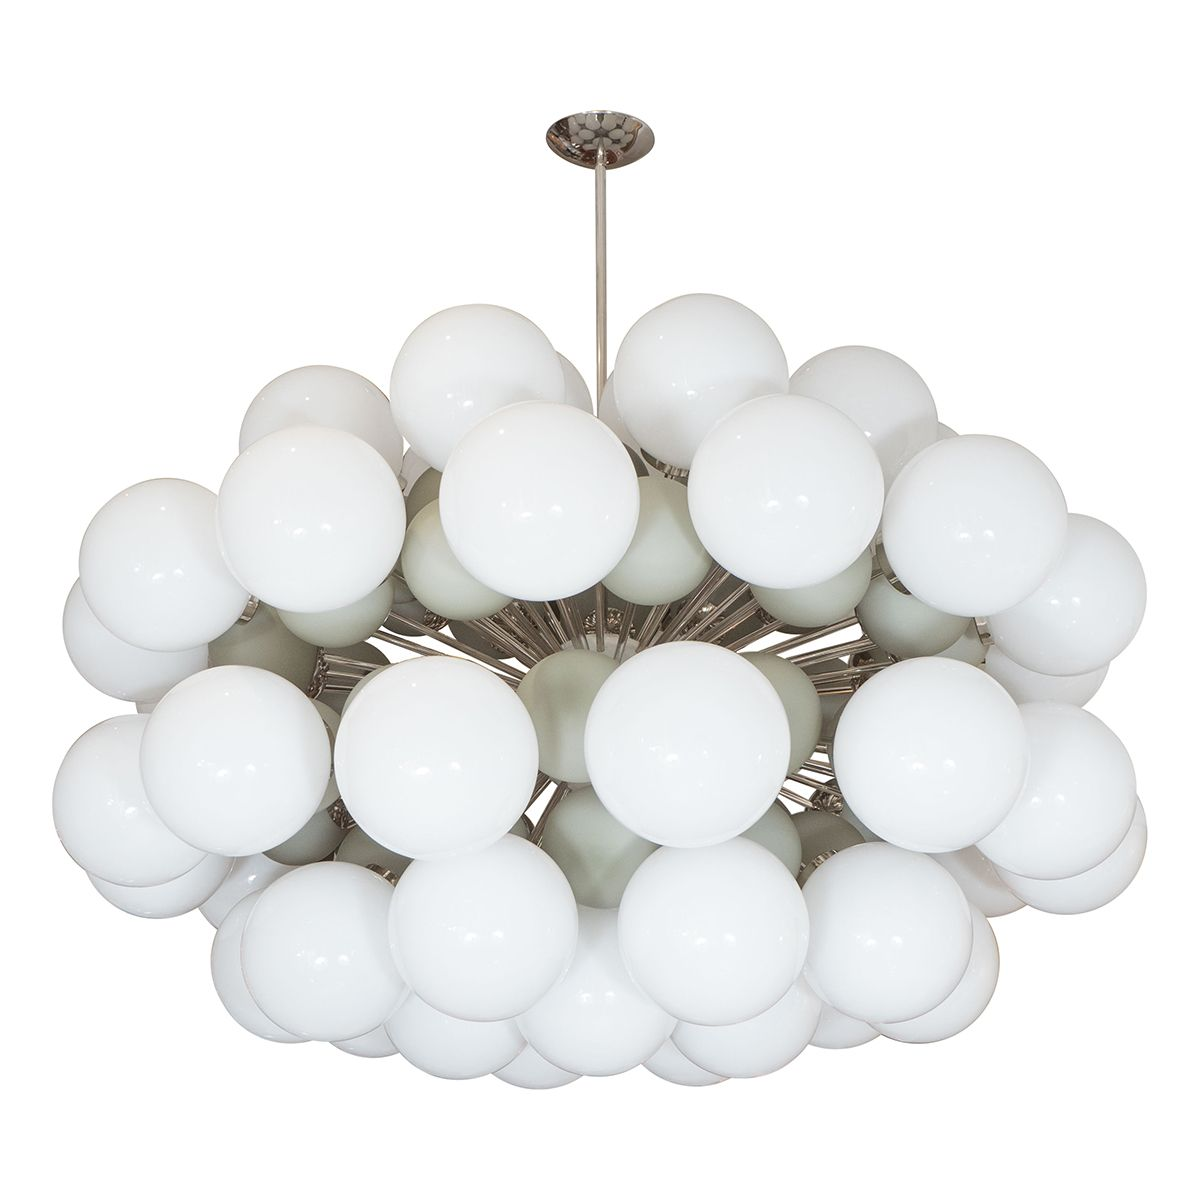 Nickel sputnik chandelier featuring small and large opaque glass nickel sputnik chandelier featuring small and large opaque glass globes arubaitofo Images